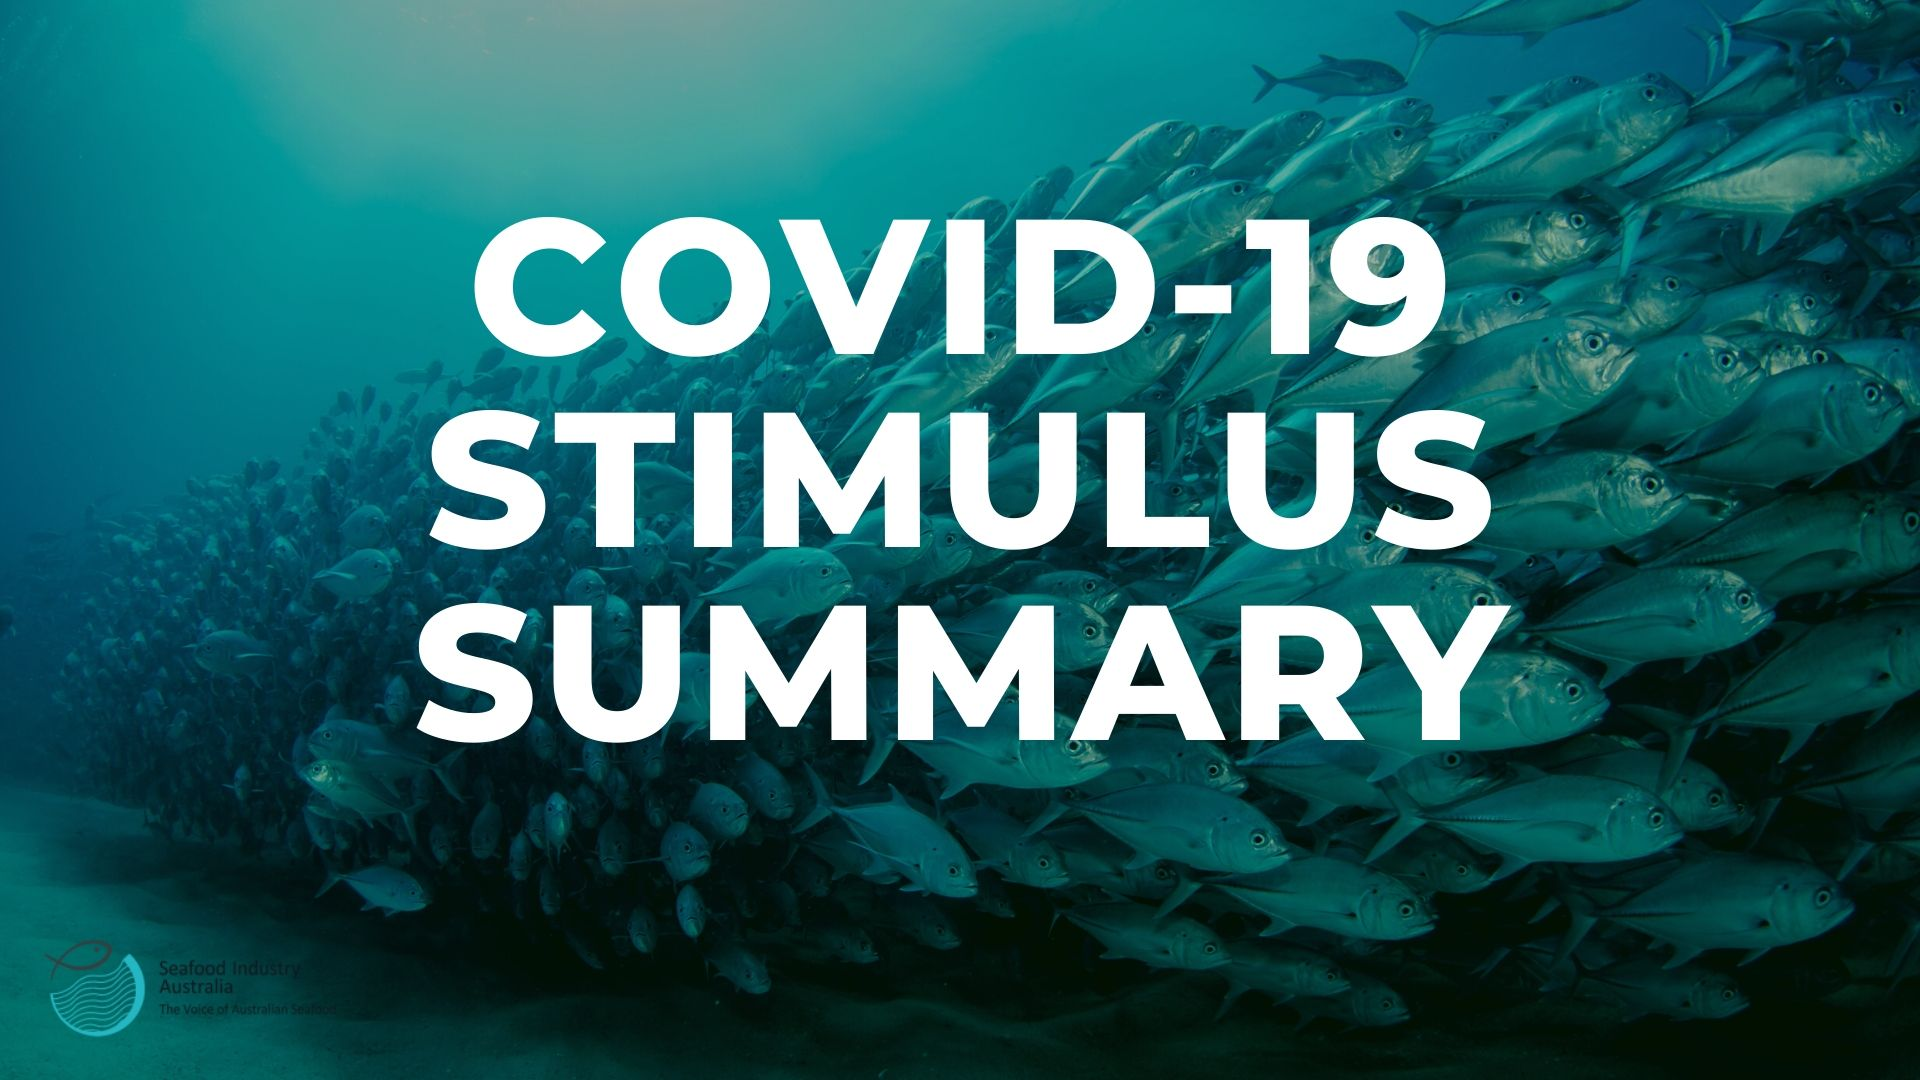 COVID-19 assistance summary and border movement summary